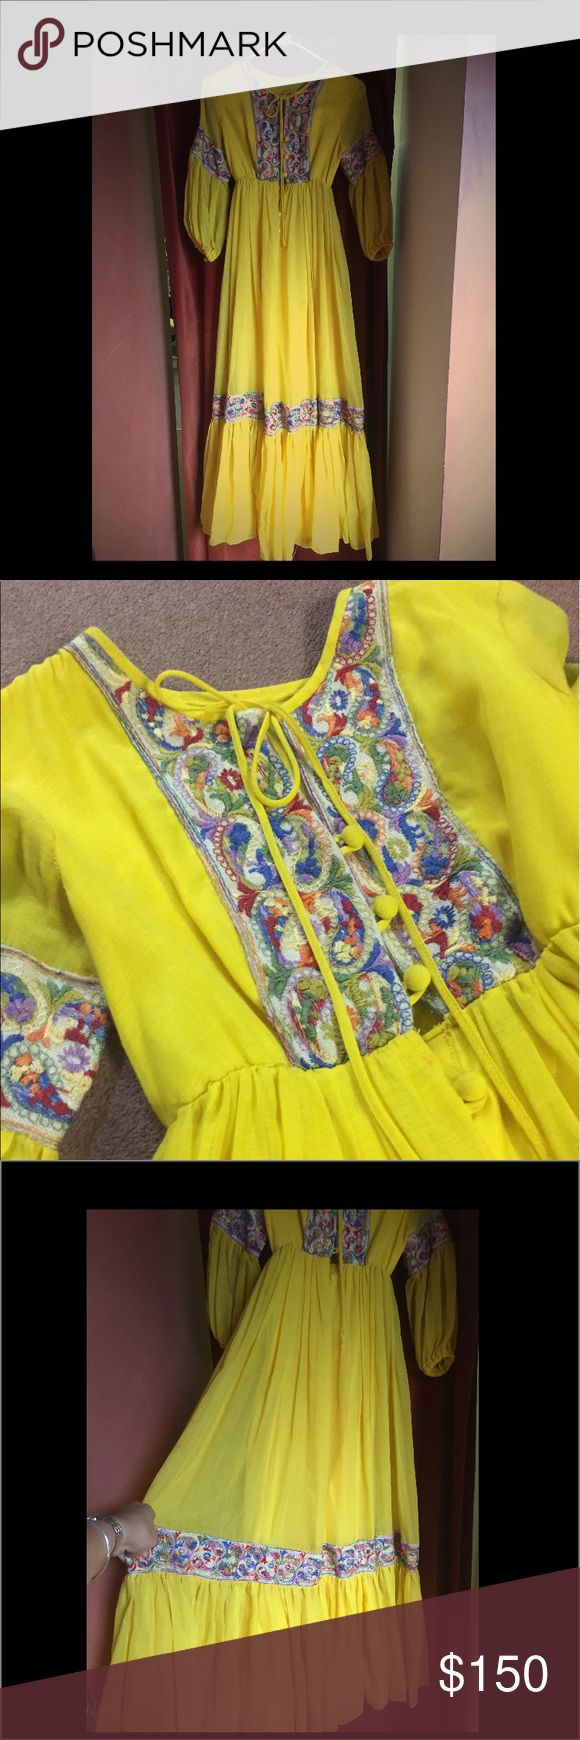 Truly vintage 1960's handmade yellow prom dress! This dress is completely handmade! It was gifted to me to wear but in no way will I ever be able to fit into it! This is a small or xs. I'll be happy to measure for you! This is perfect for a hippy wedding! A festival, a ceremony for a loved one. Their is no other dress like this one. Totally custom! Open to reasonable offers. Dresses Maxi